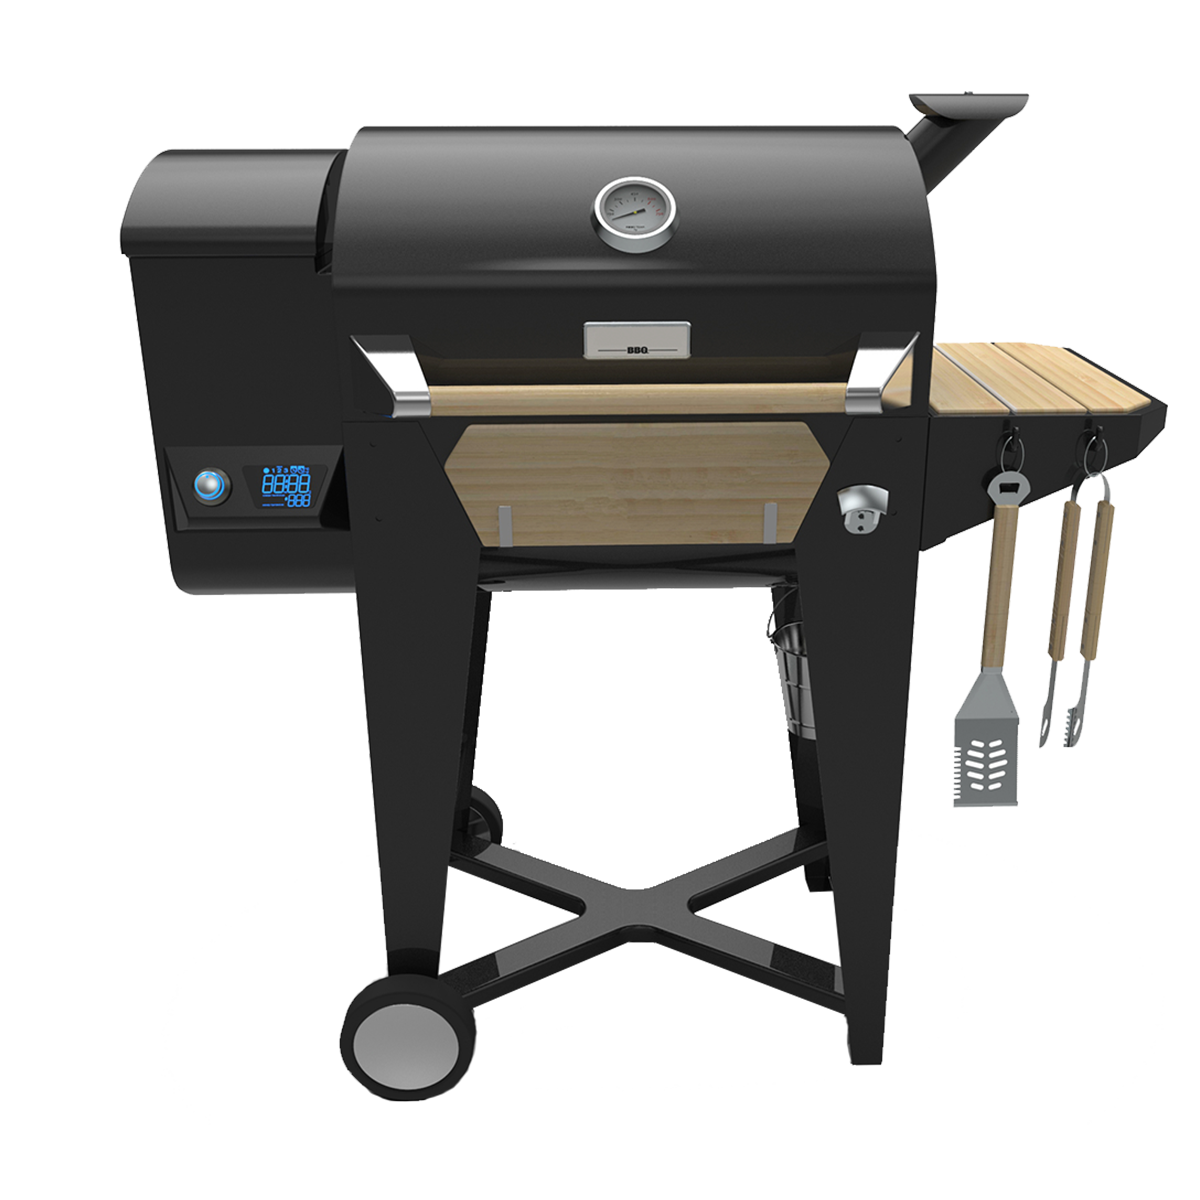 home-pellit-grill